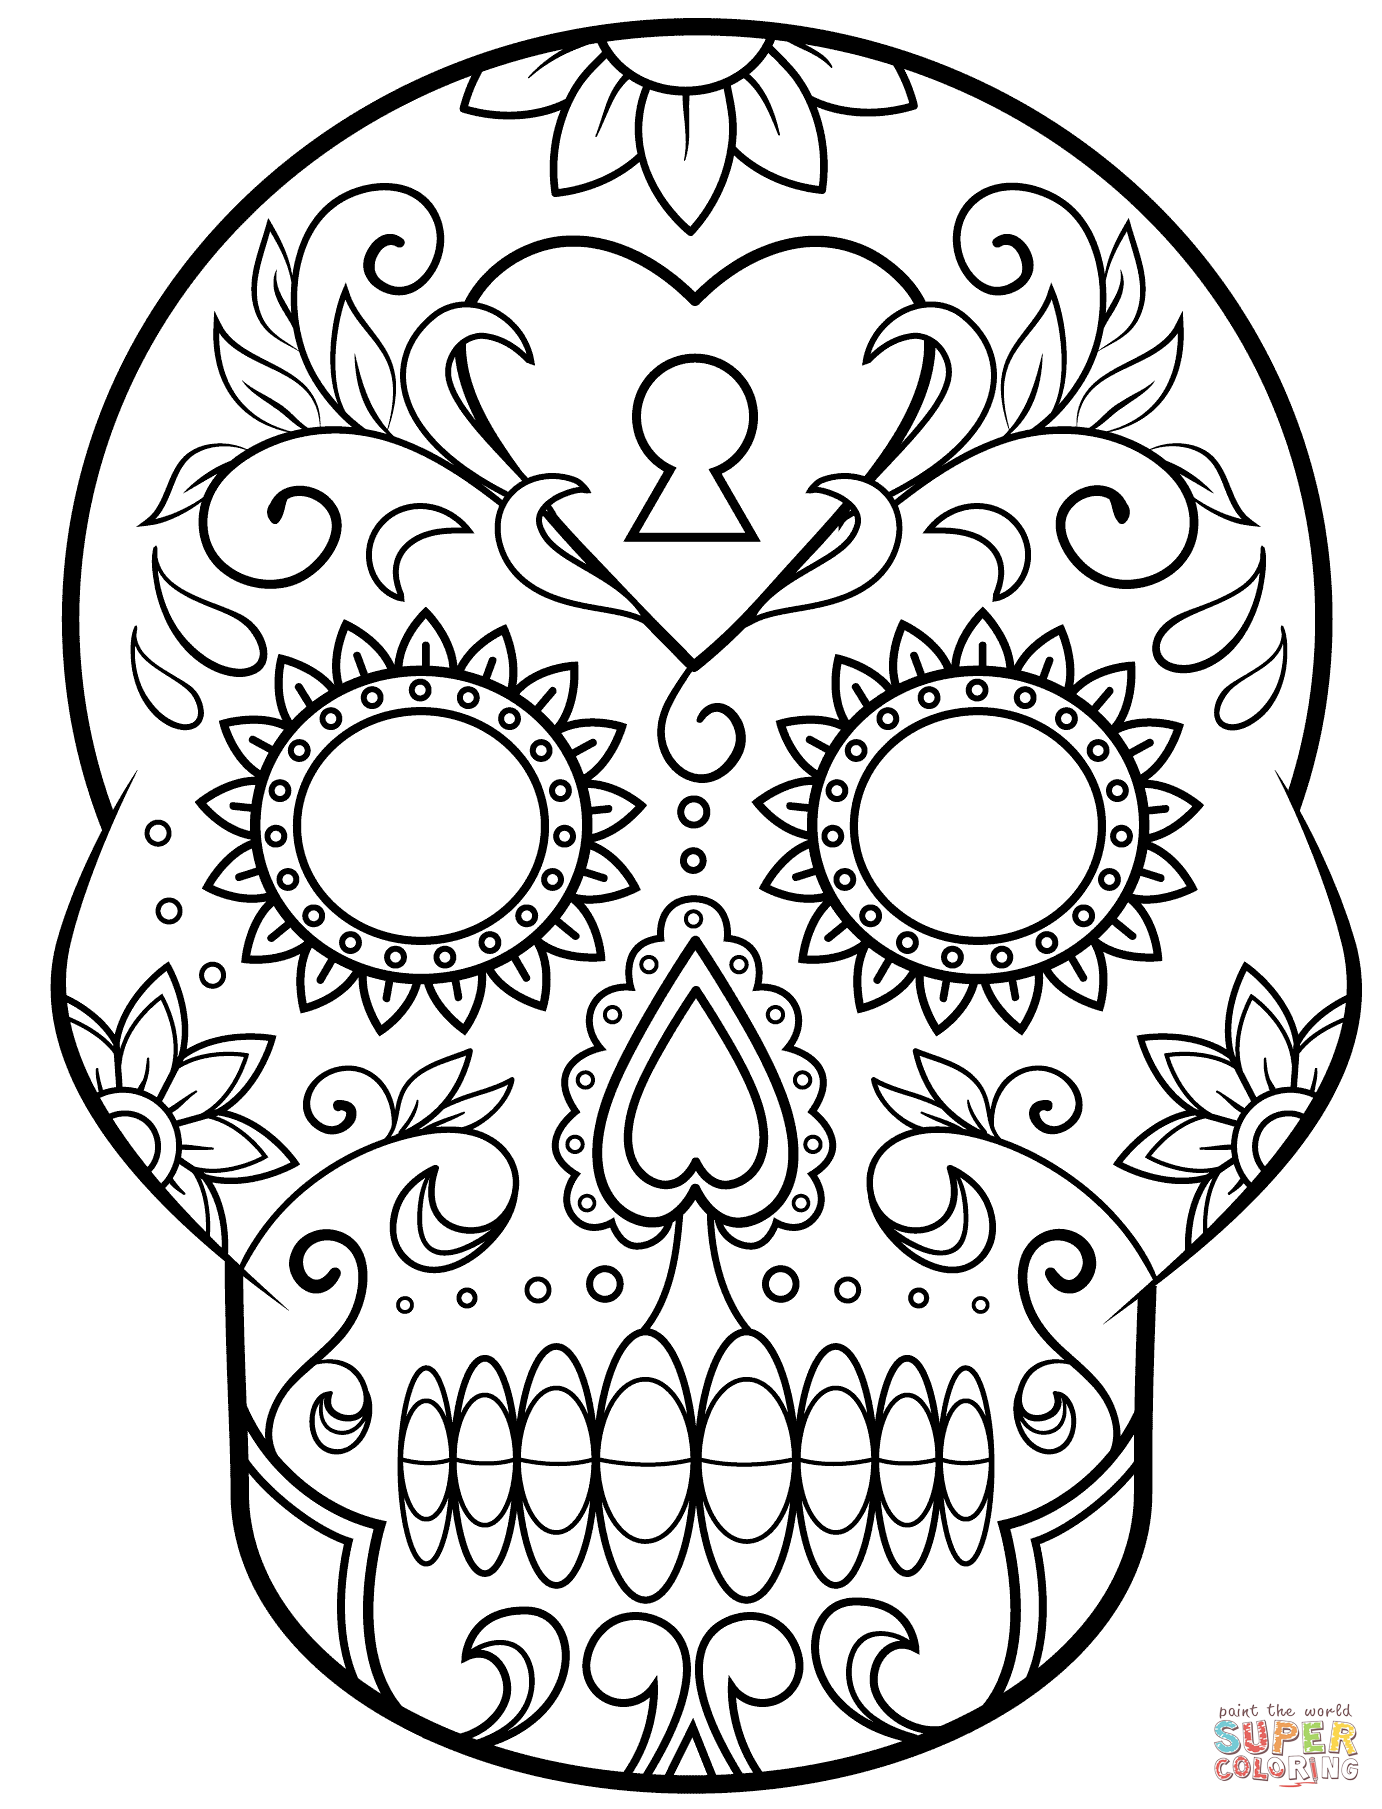 day of the dead coloring pages free free printable day of the dead coloring pages best pages coloring of the day dead free